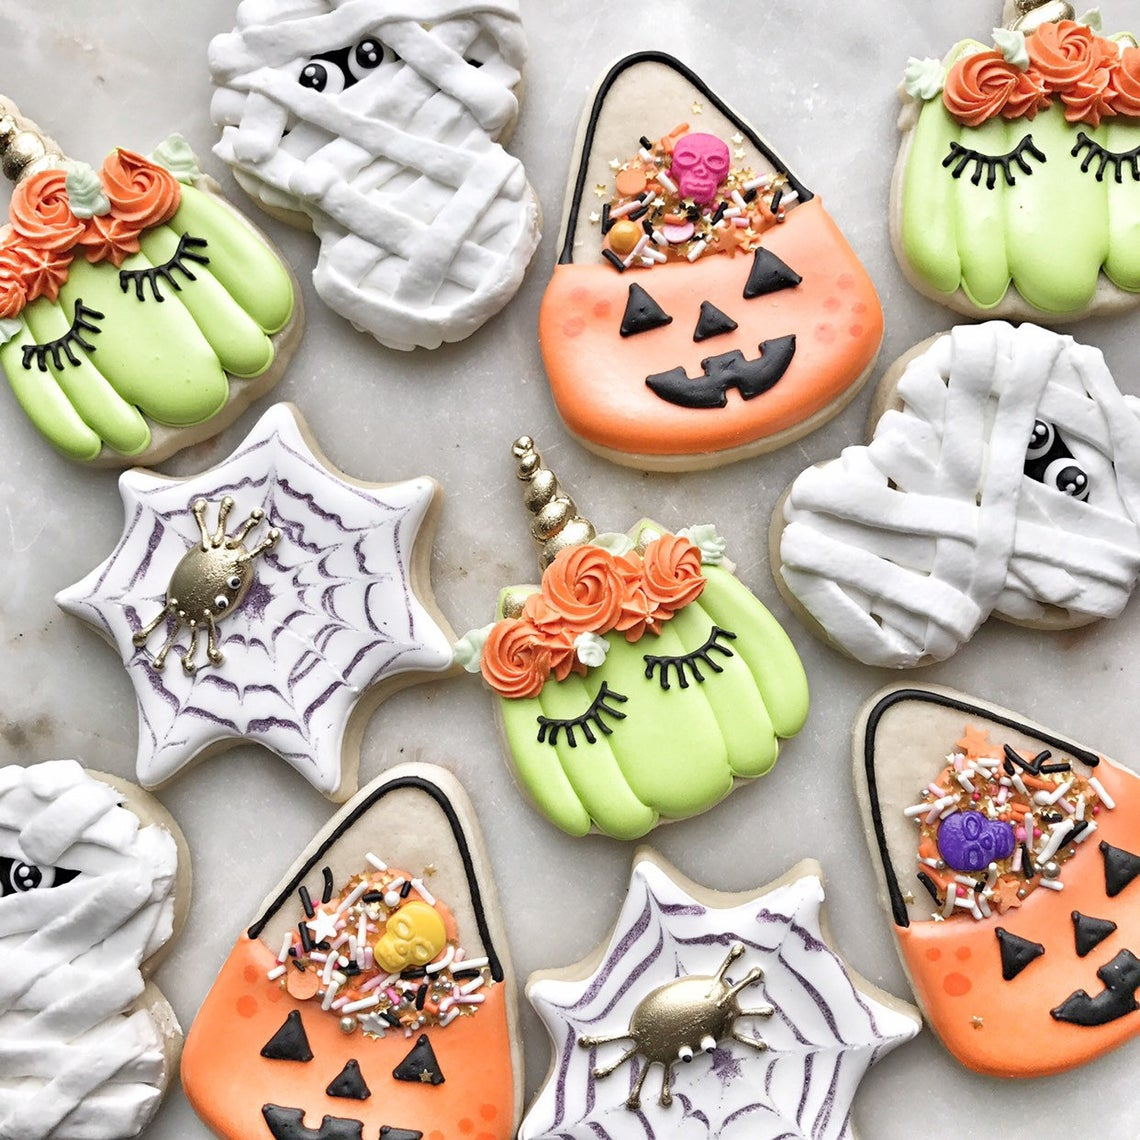 Trick Or Treat Bucket, Spider Web, Pumpkin Unicorn, Mummy Halloween Iced Sugar Cookies by Royally Iced Sweets on TheIcedSugarCookie.com